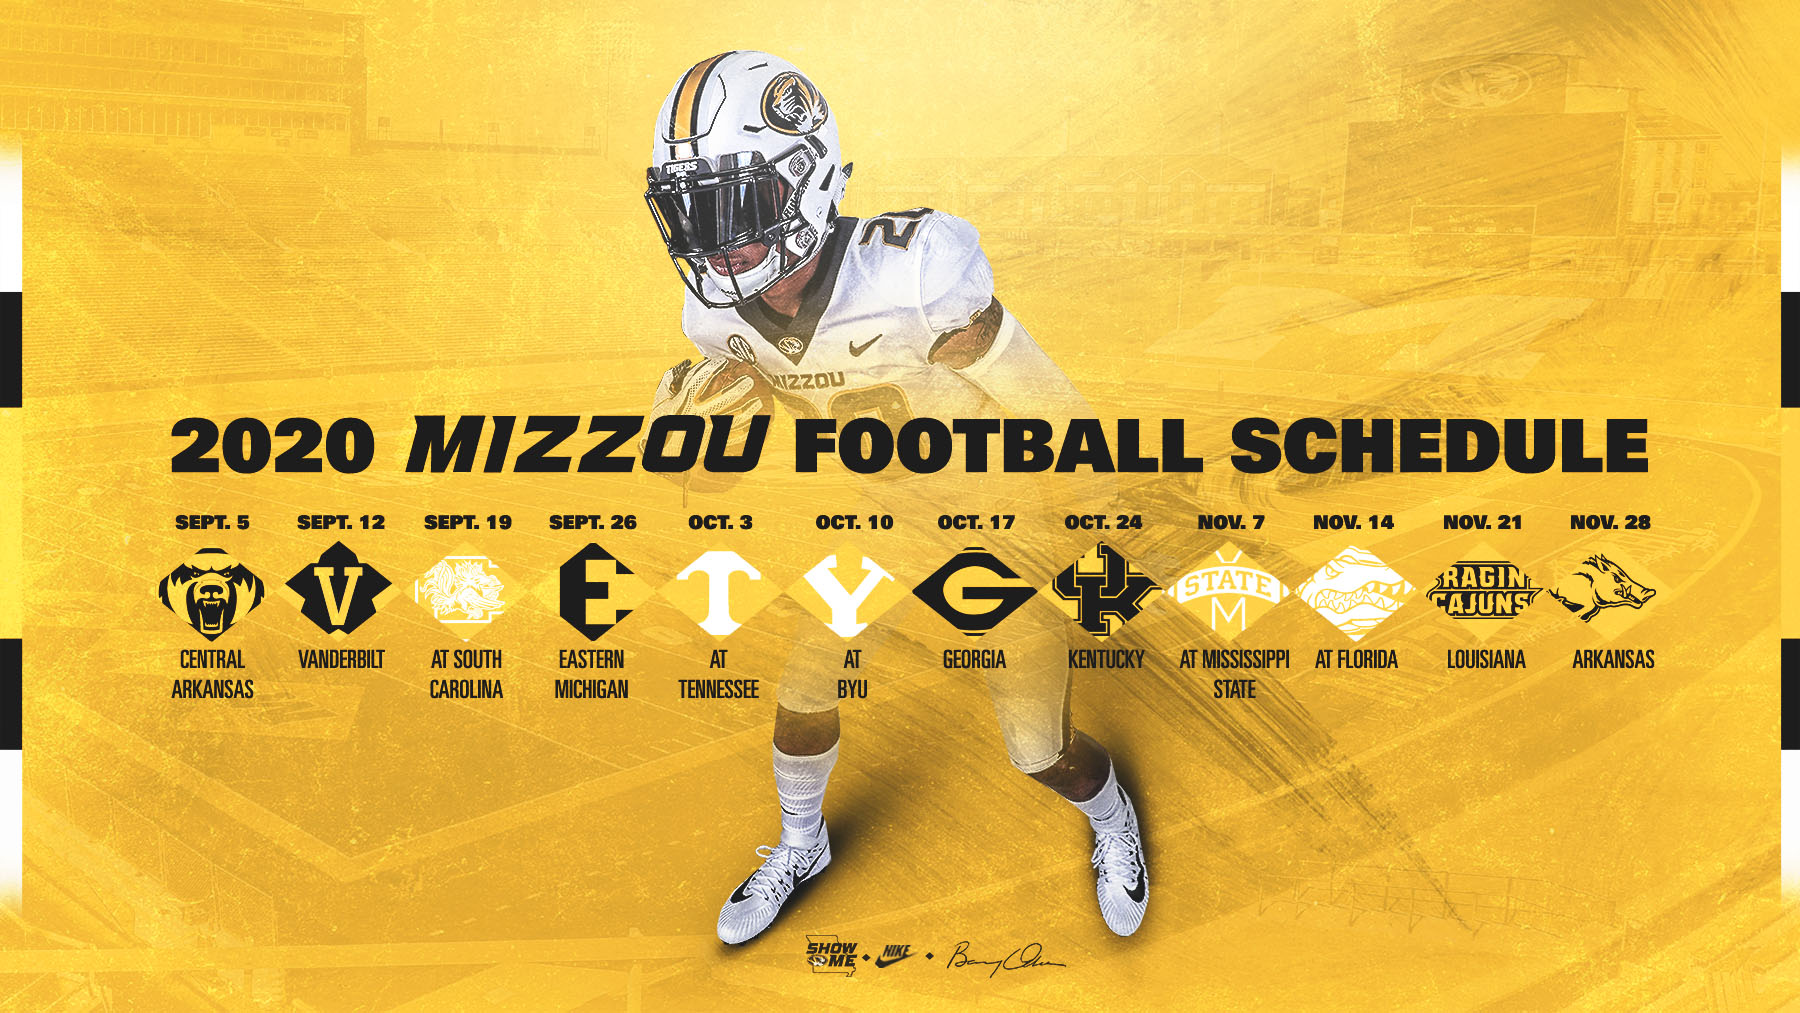 Mu Football Schedule 2020 Mizzou Football 2020 Full Schedule Dates Finalized   University of